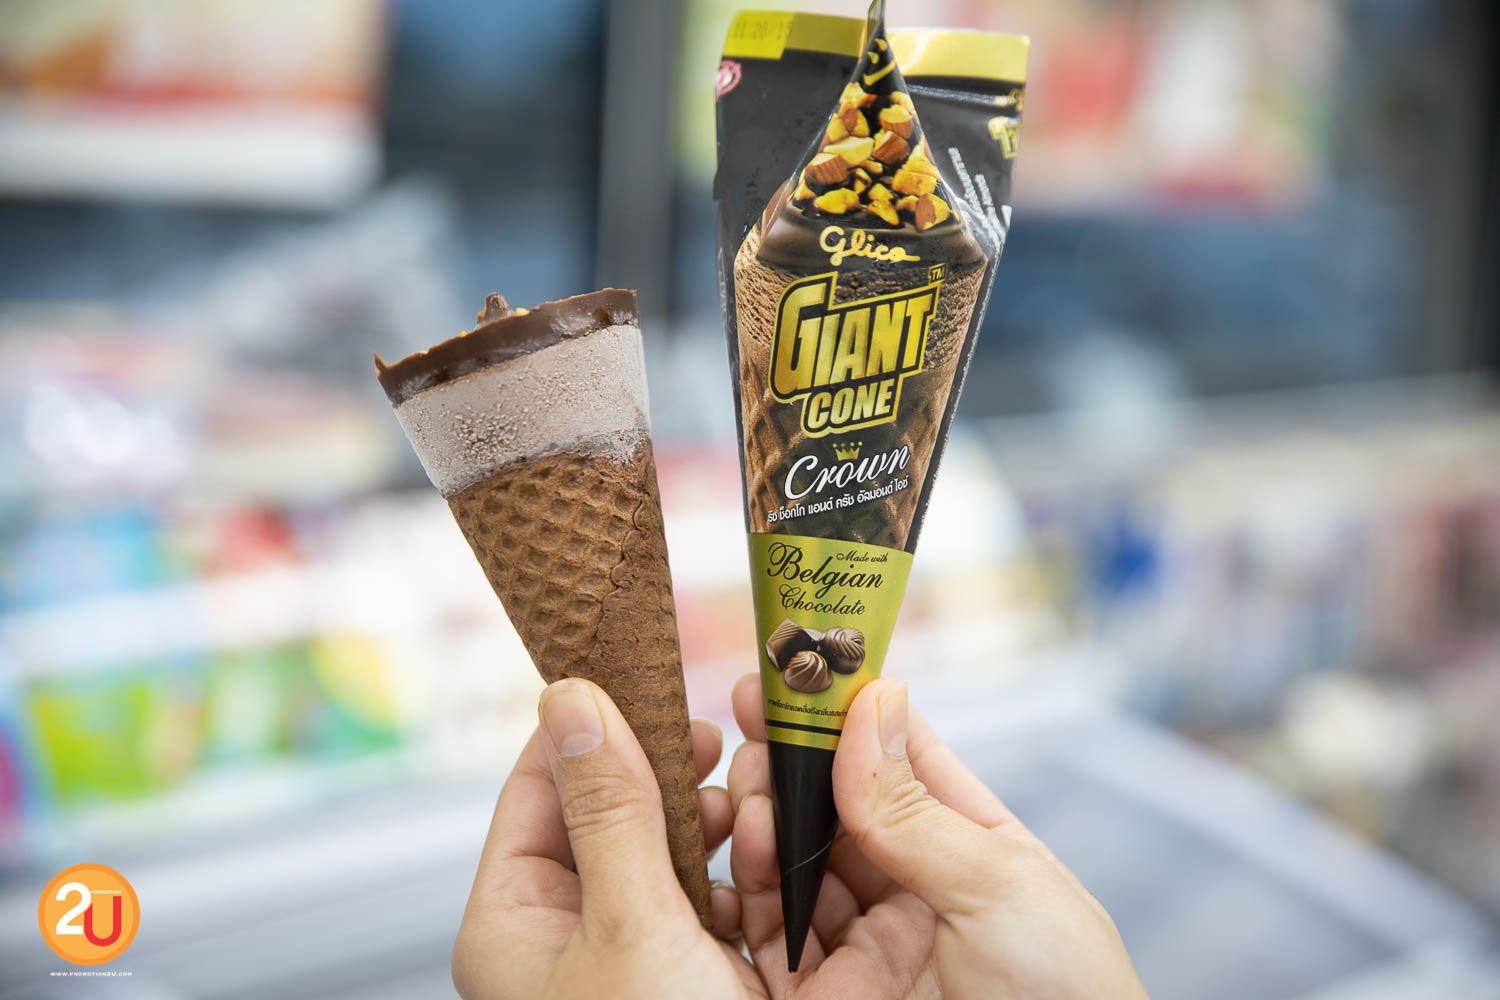 Promotion Gulico Giant Clone Crown Special Discount 30 Baht at 7 11 P07